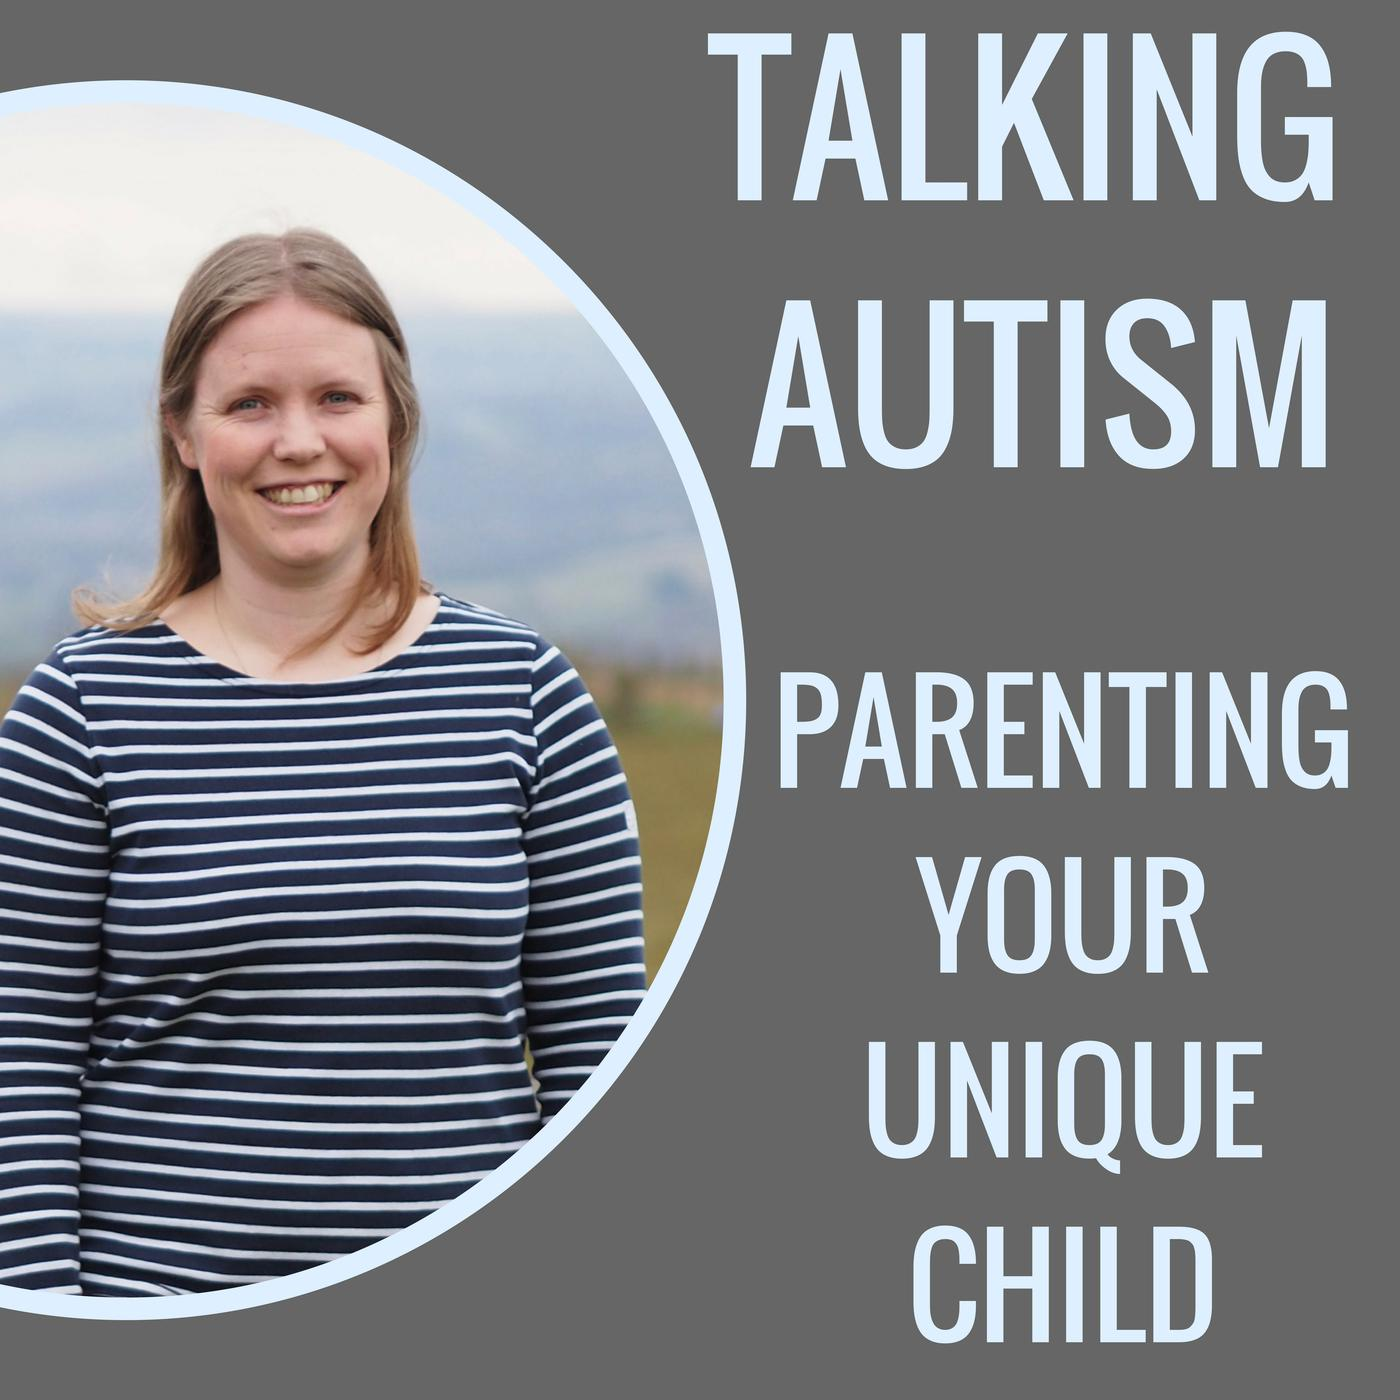 Talking Autism: Parenting Your Unique Child (podcast